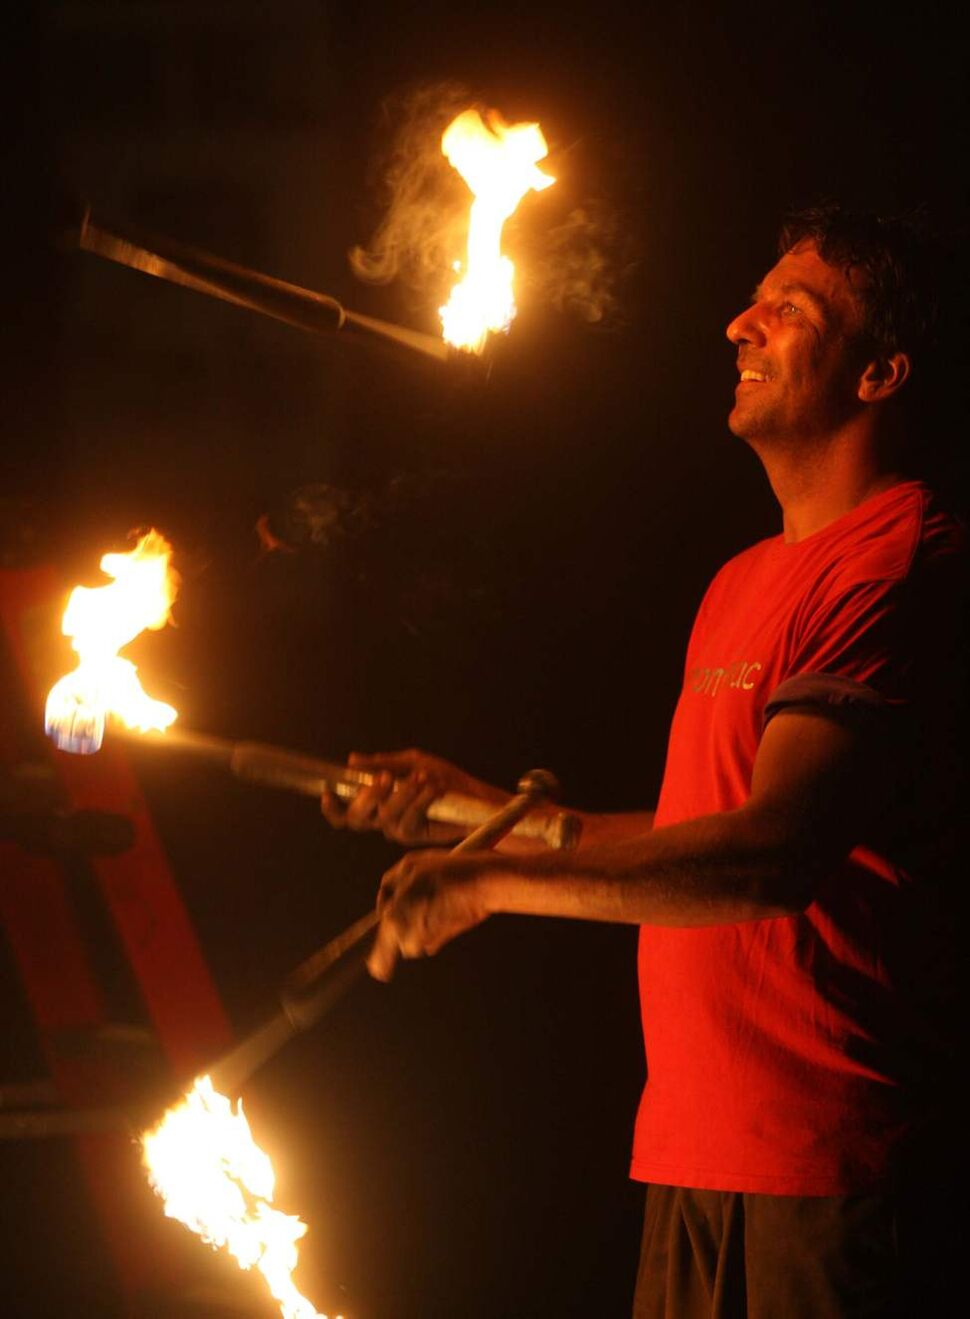 DAUPHIN COUNTRYFEST - Festival sideshow entertainer juggles fire.   June 27, 2014